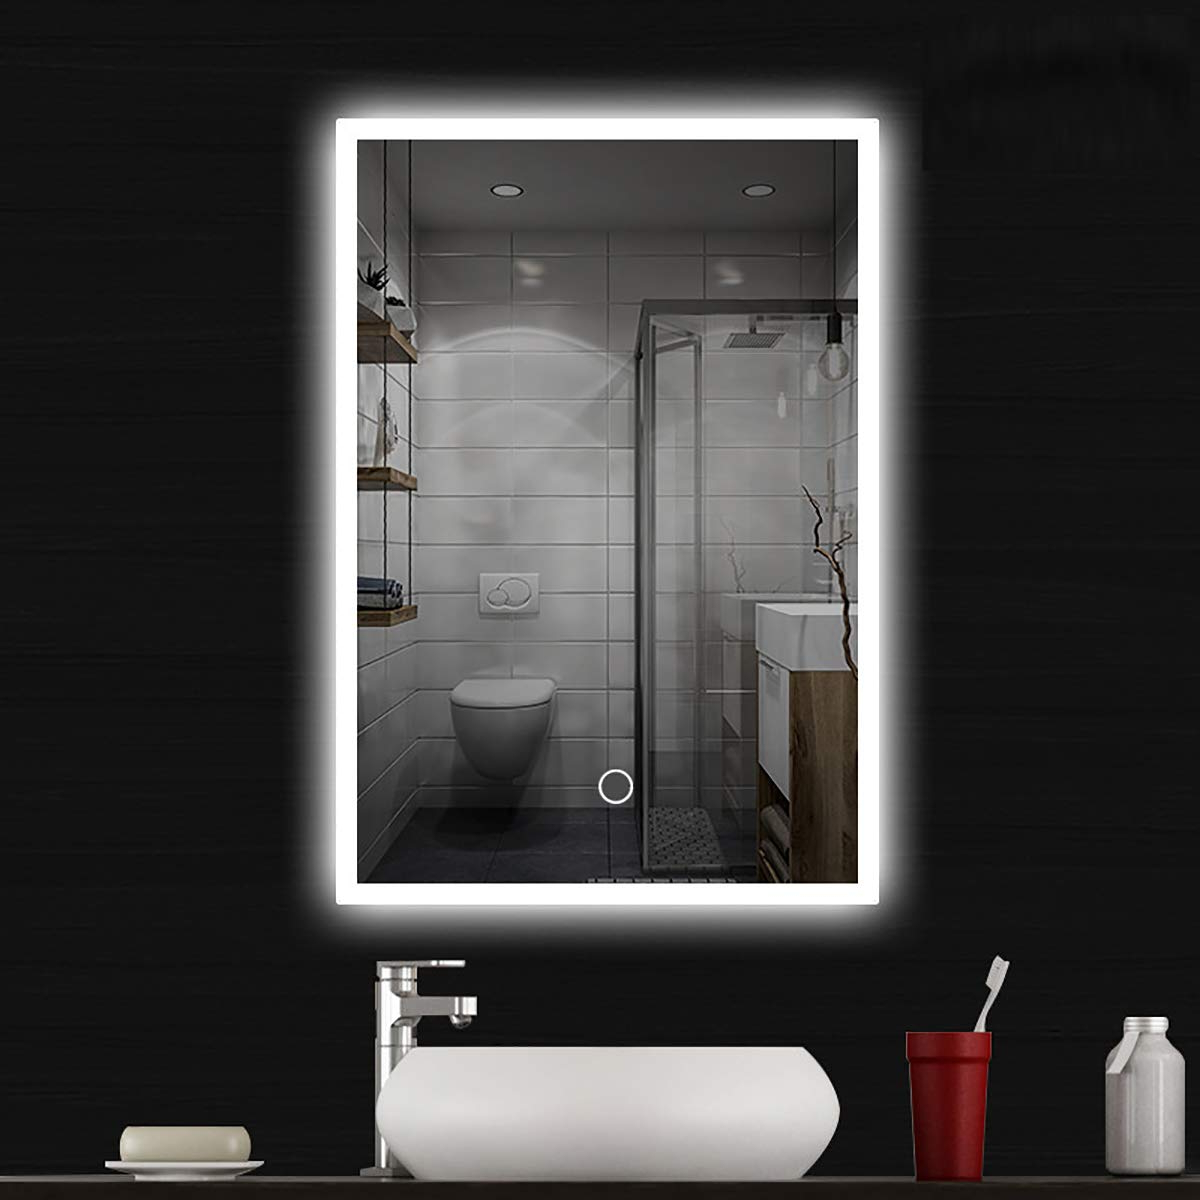 Large Lighted Bathroom Wall Mirrors For Well Liked Amazon: Syhsdzg Large 28 Inch X 20 Inch Led Bathroom Mirror (Gallery 3 of 20)